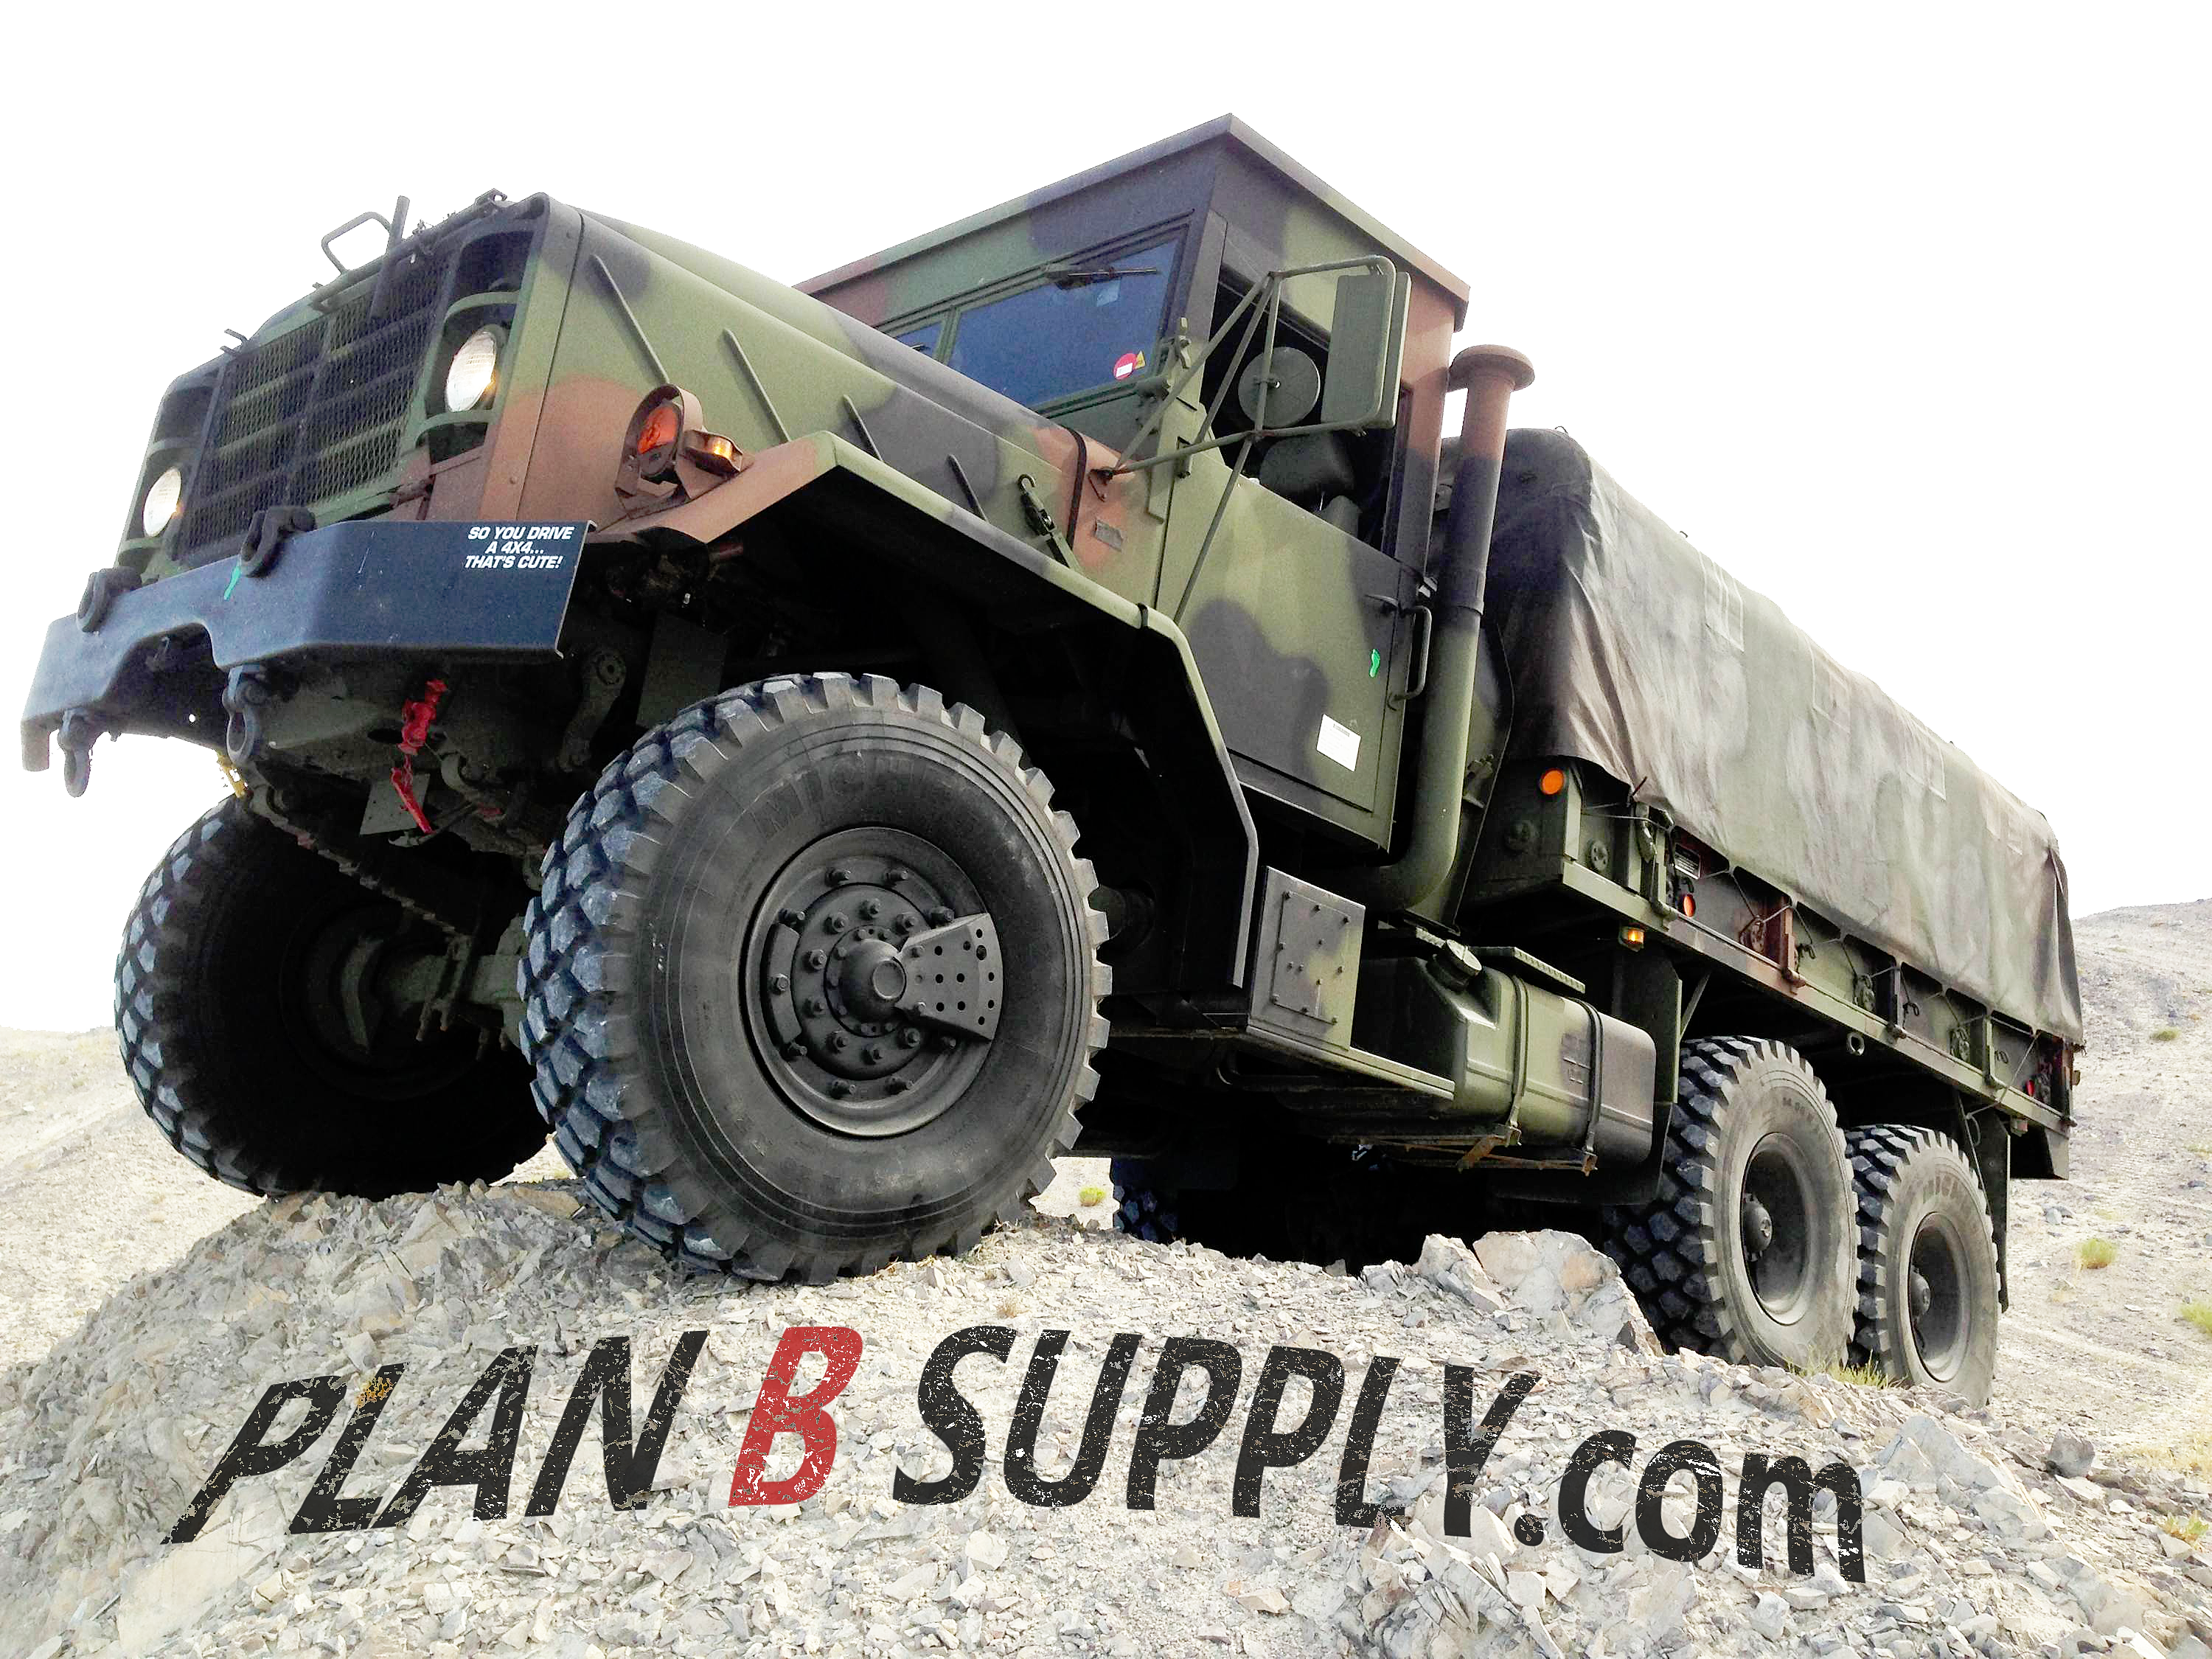 Plan B Supply 6x6 Military Disaster Trucks And Emergency ... - photo#45